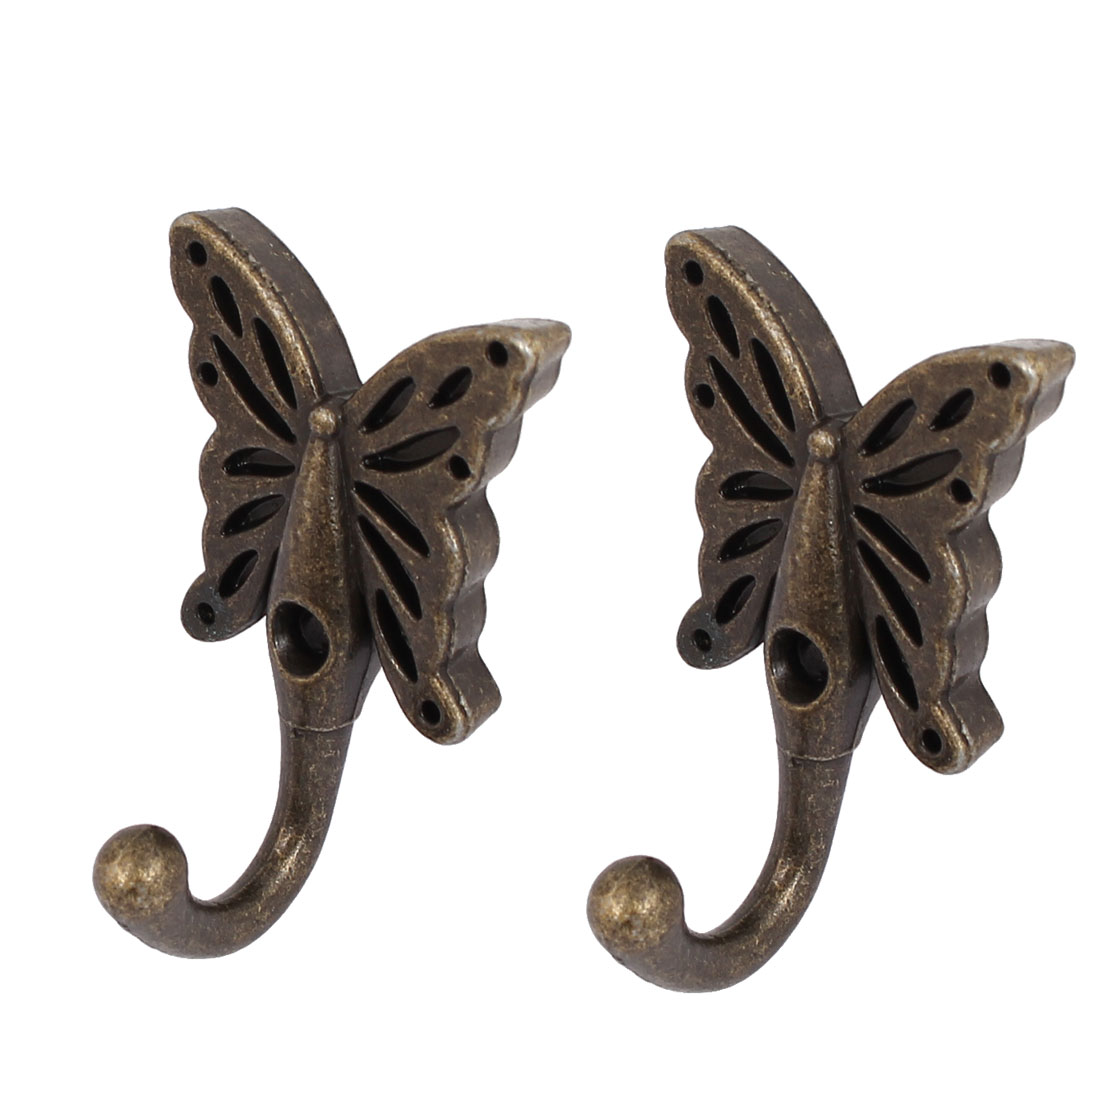 Robe Clothes Hat Butterfly Key Coat Hooks Wall Hanger 2pcs